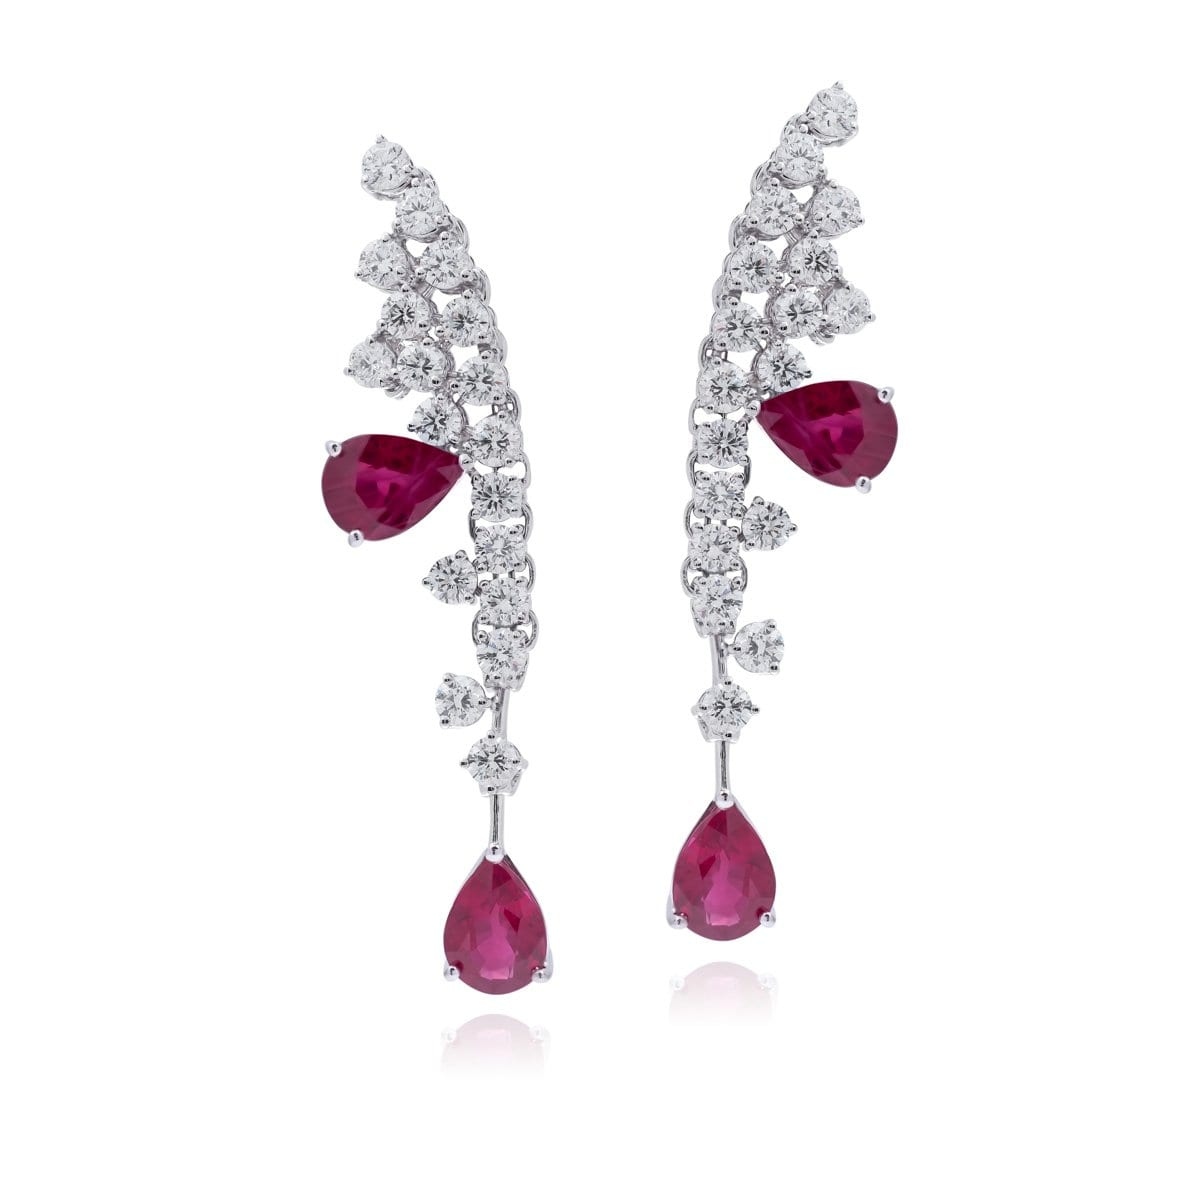 DIVINE RUBY Earrings - STENZHORN JEWELLERY